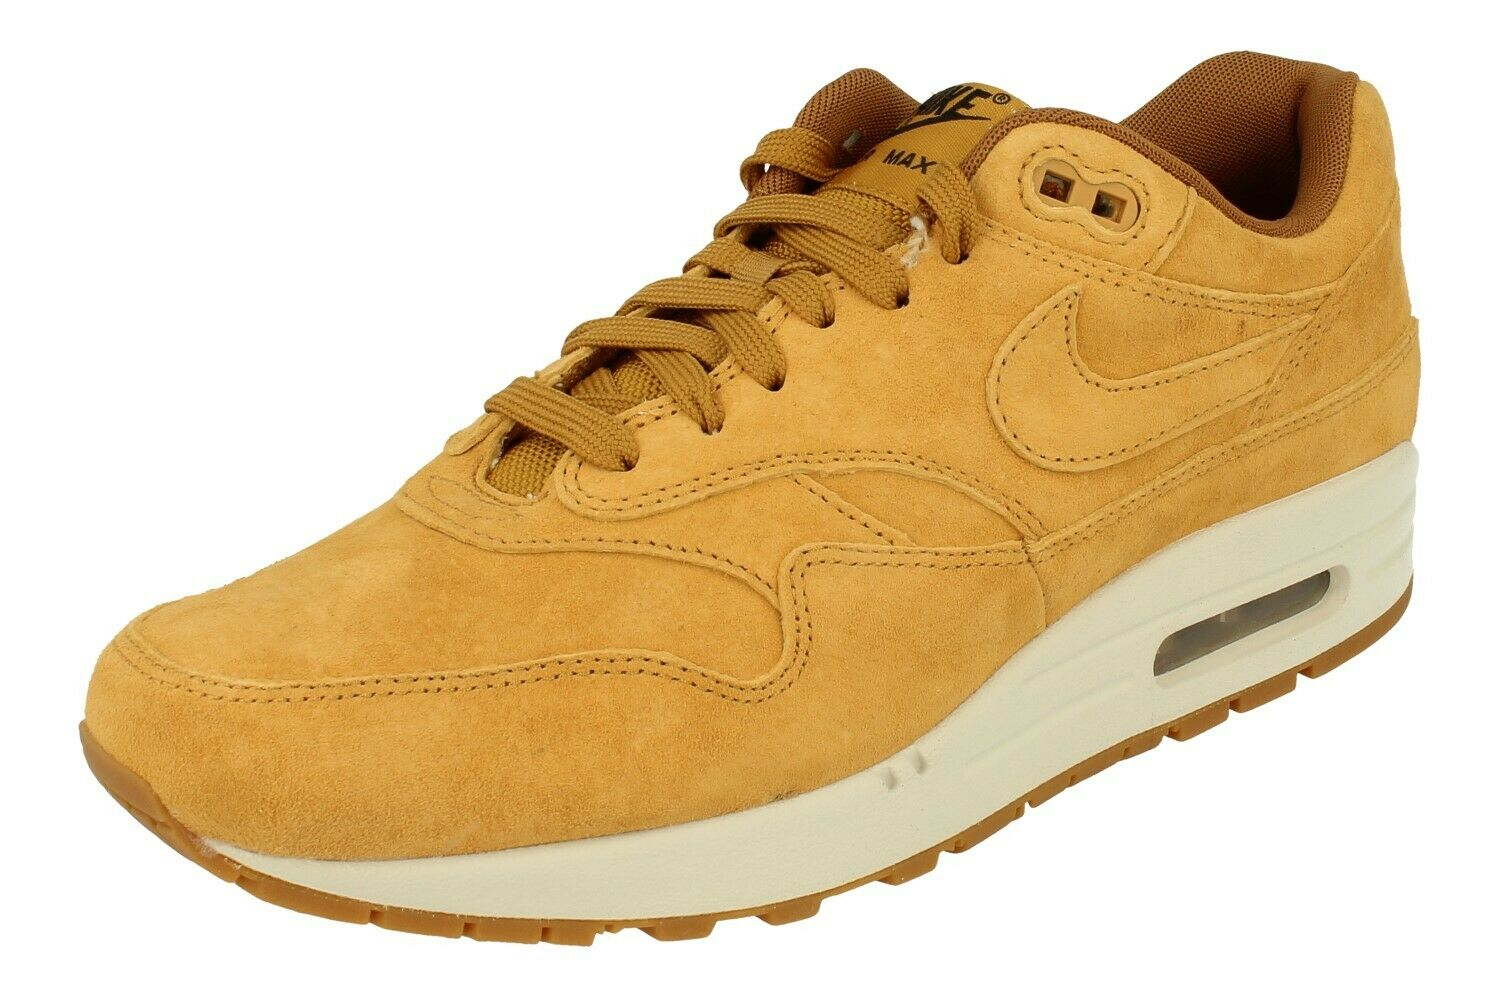 Nike Air Max 1 Premium Homme Running Baskets 875844 Baskets Chaussures 701